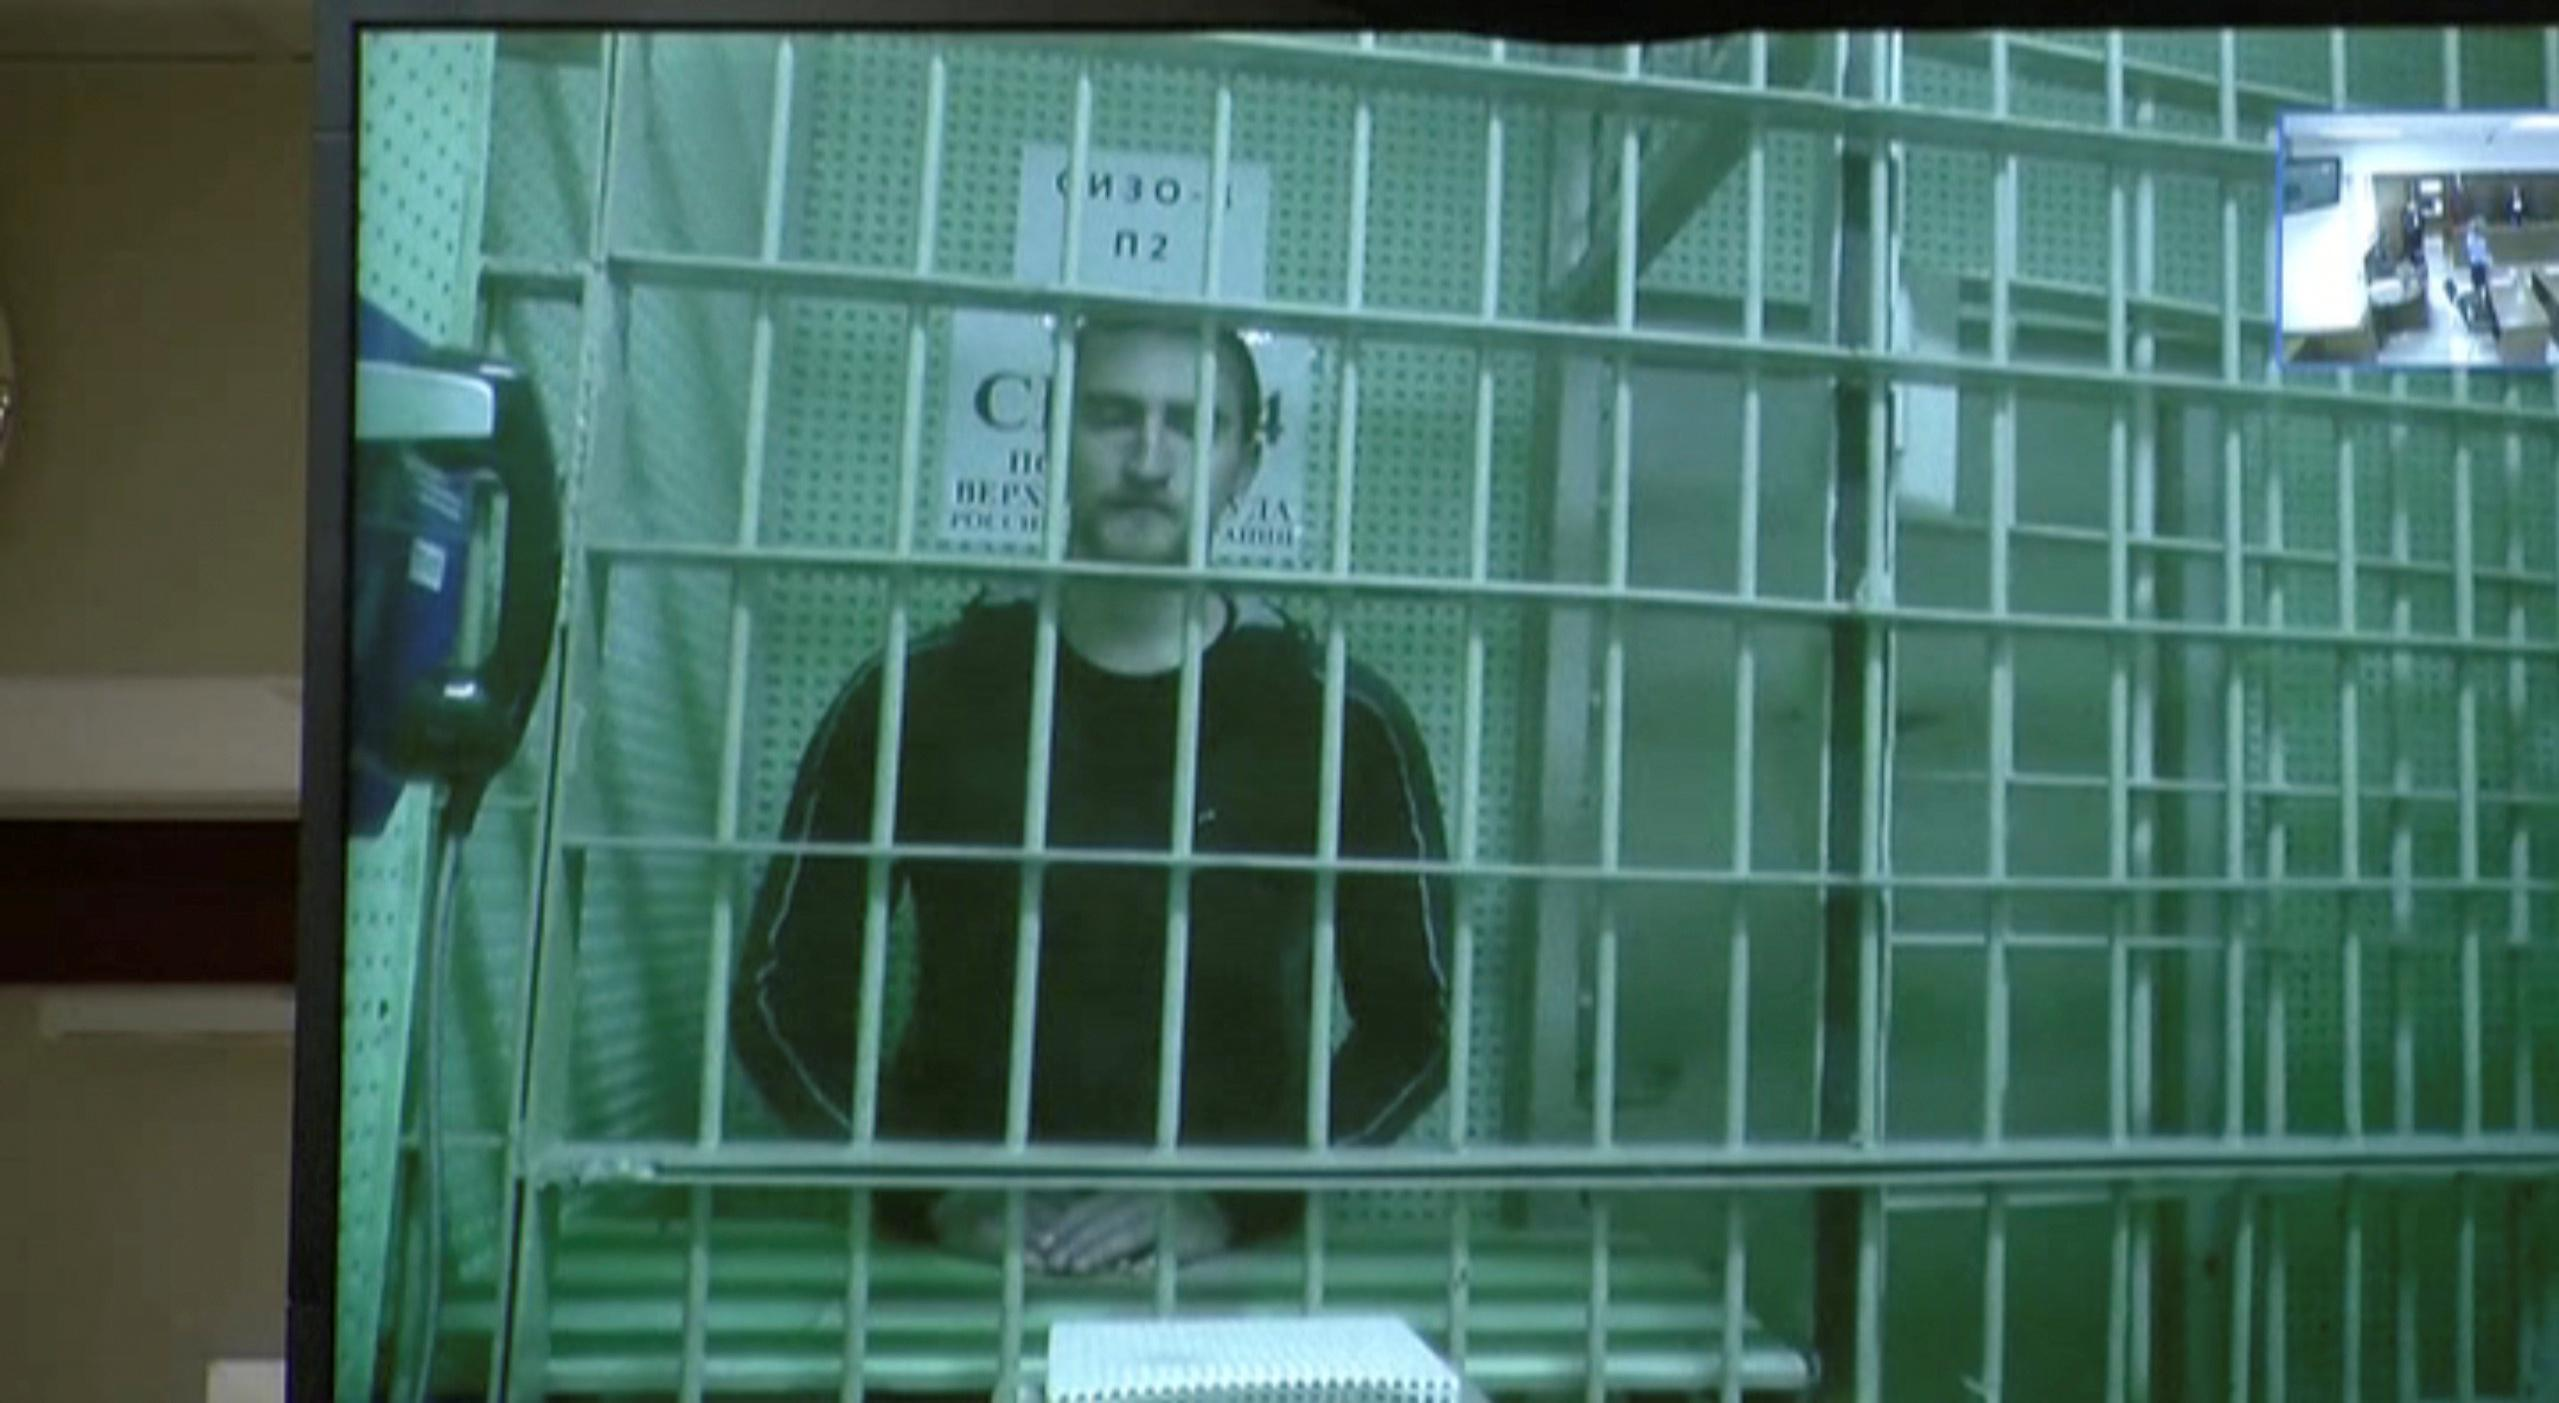 Russia, in rare U-turn, frees jailed actor after outcry